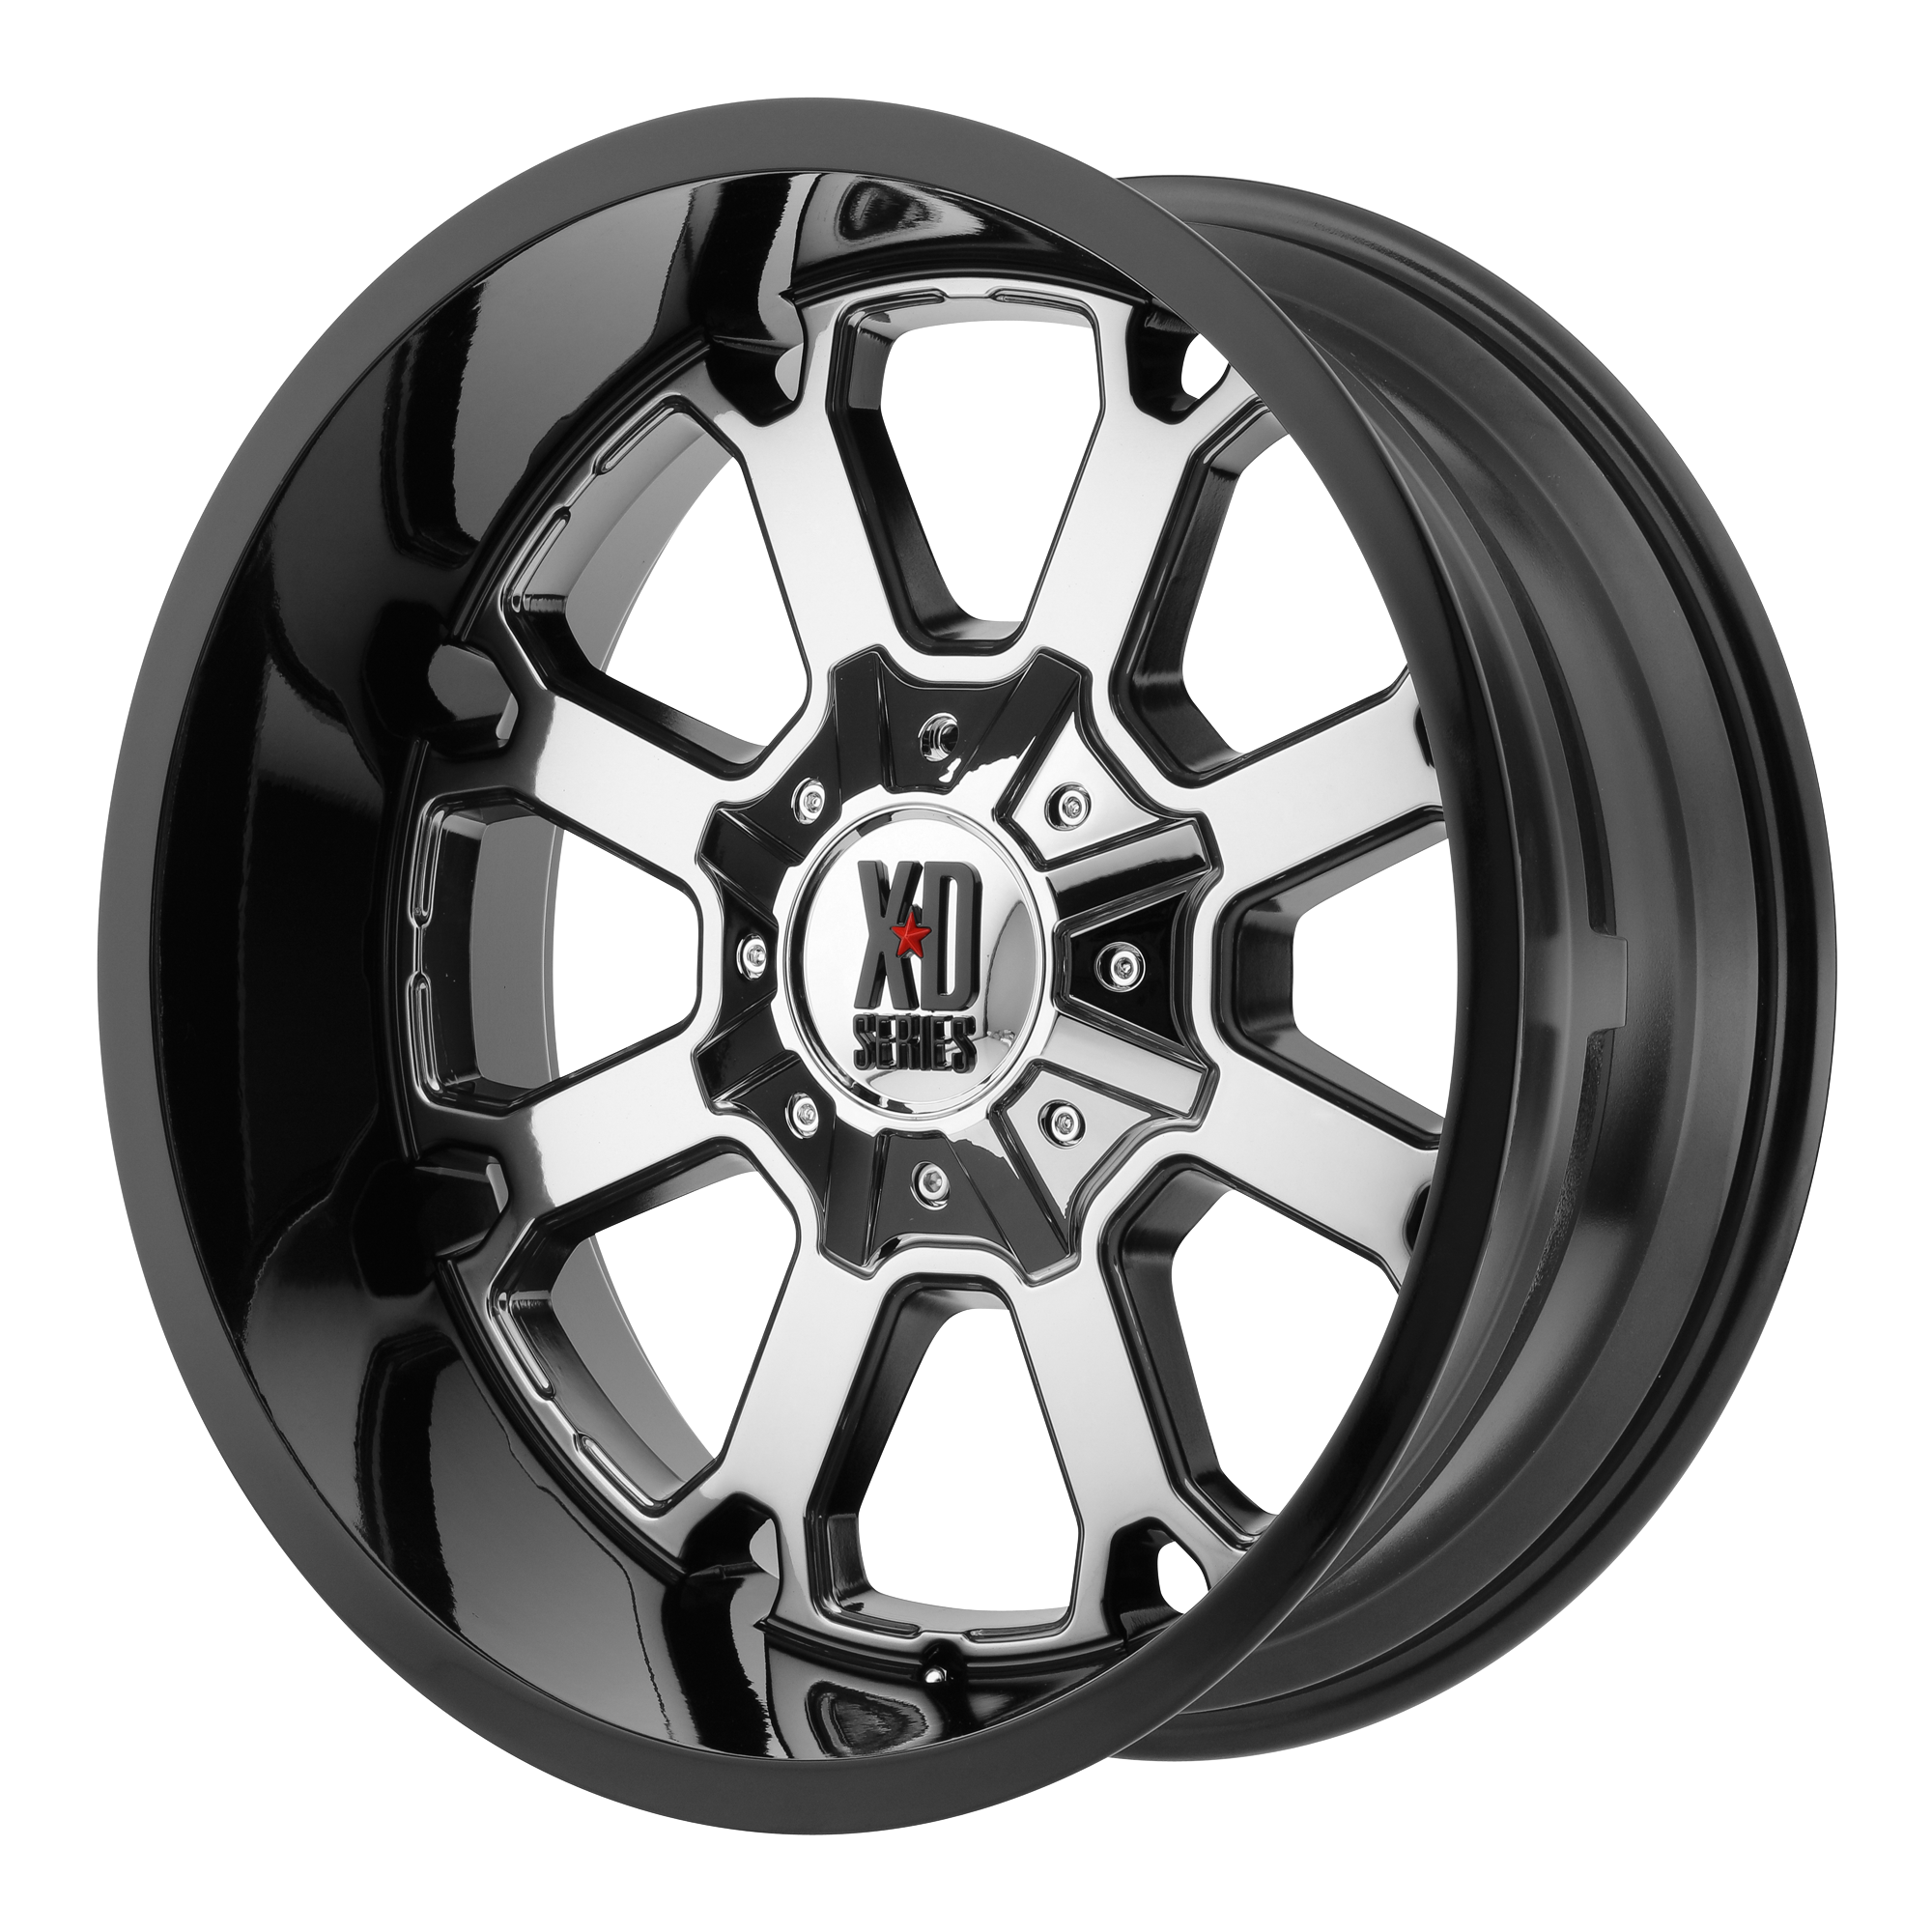 XD SERIES BY KMC WHEELS XD825 BUCK 25 PVD Center With Gloss Black Lip